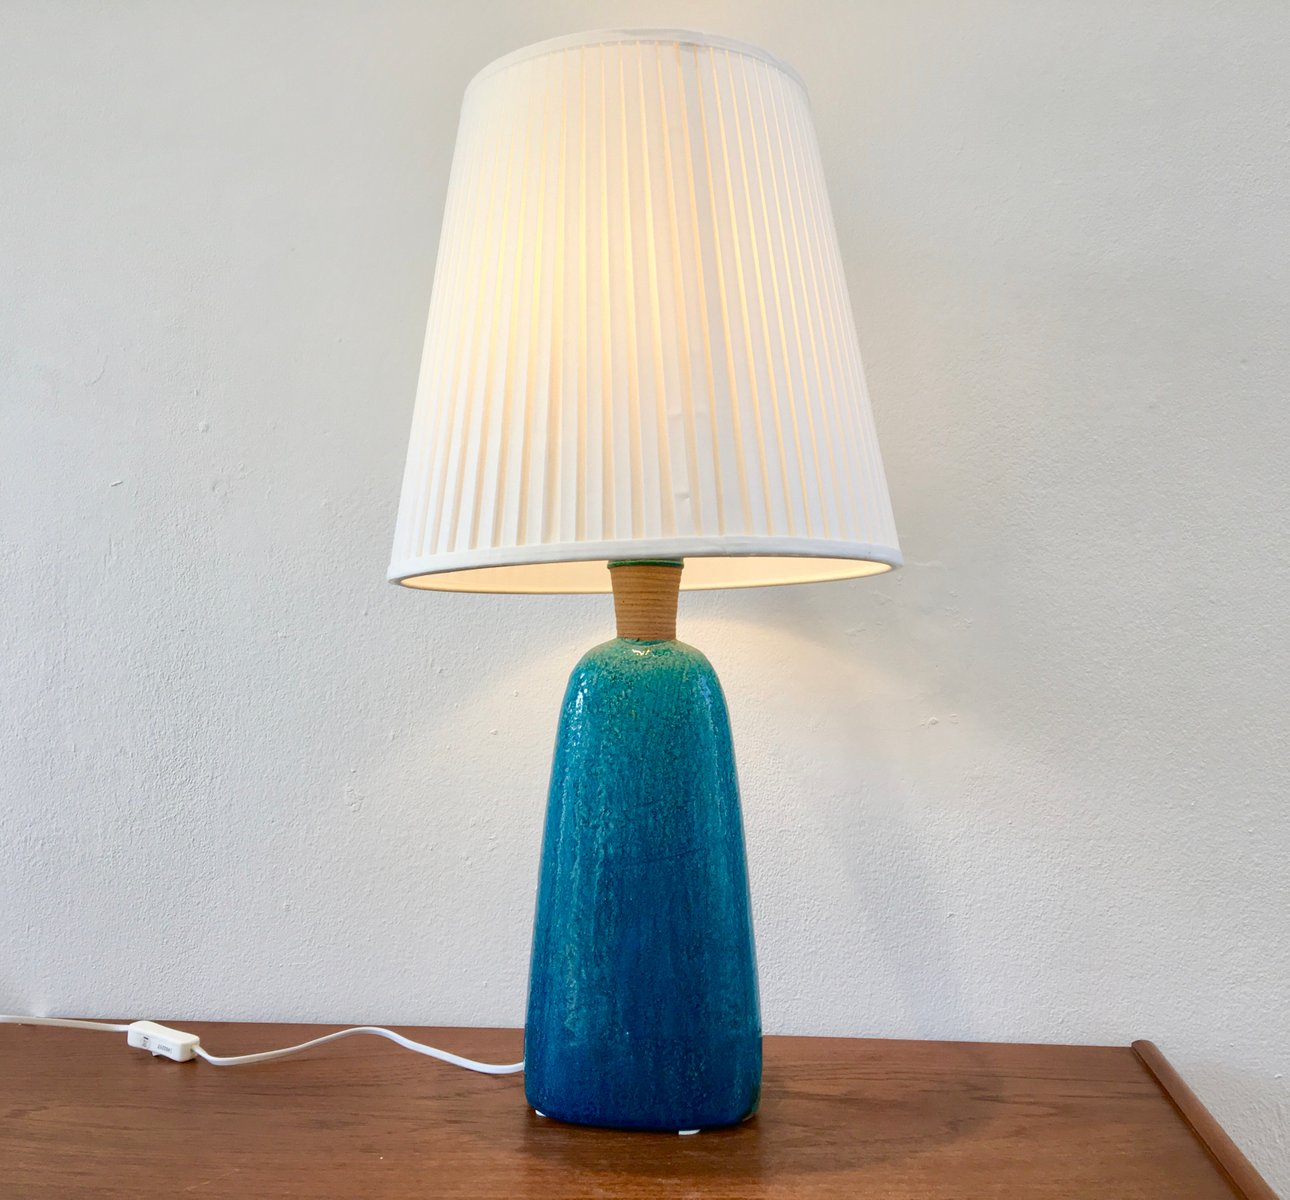 Mid Century Turquoise Table Lamp By Nils Kähler, 1950s